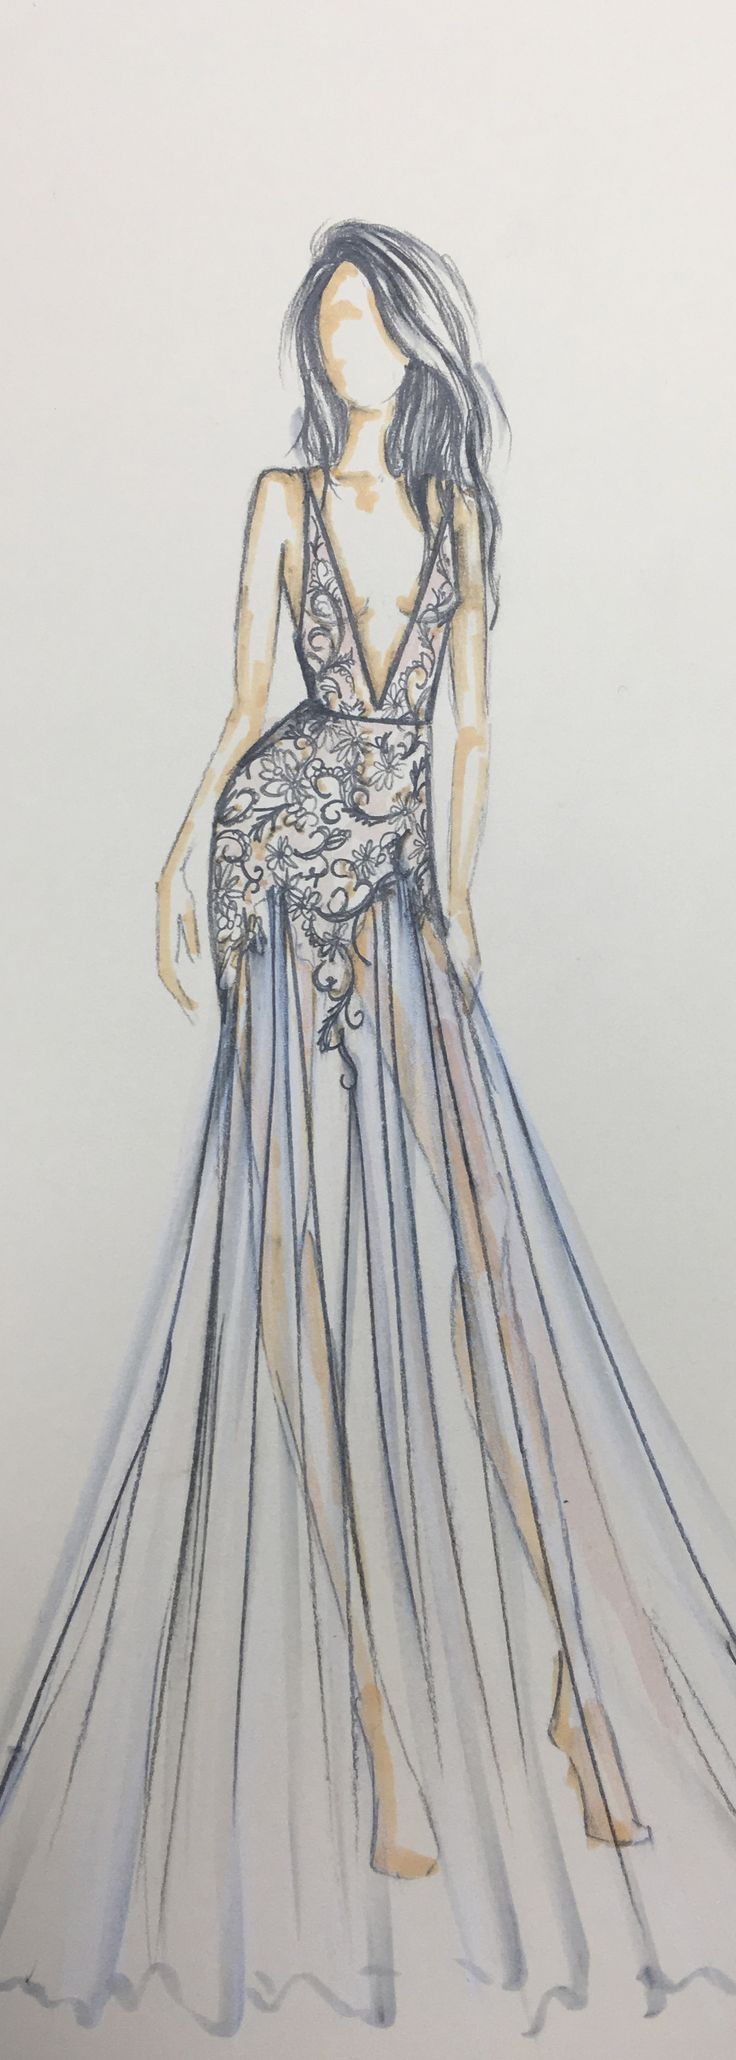 Clothing Design Ideas fashion sketchbook fashion drawings fashion design portfolio layout andrew voss Berta 2017 Sketch Style 17 136